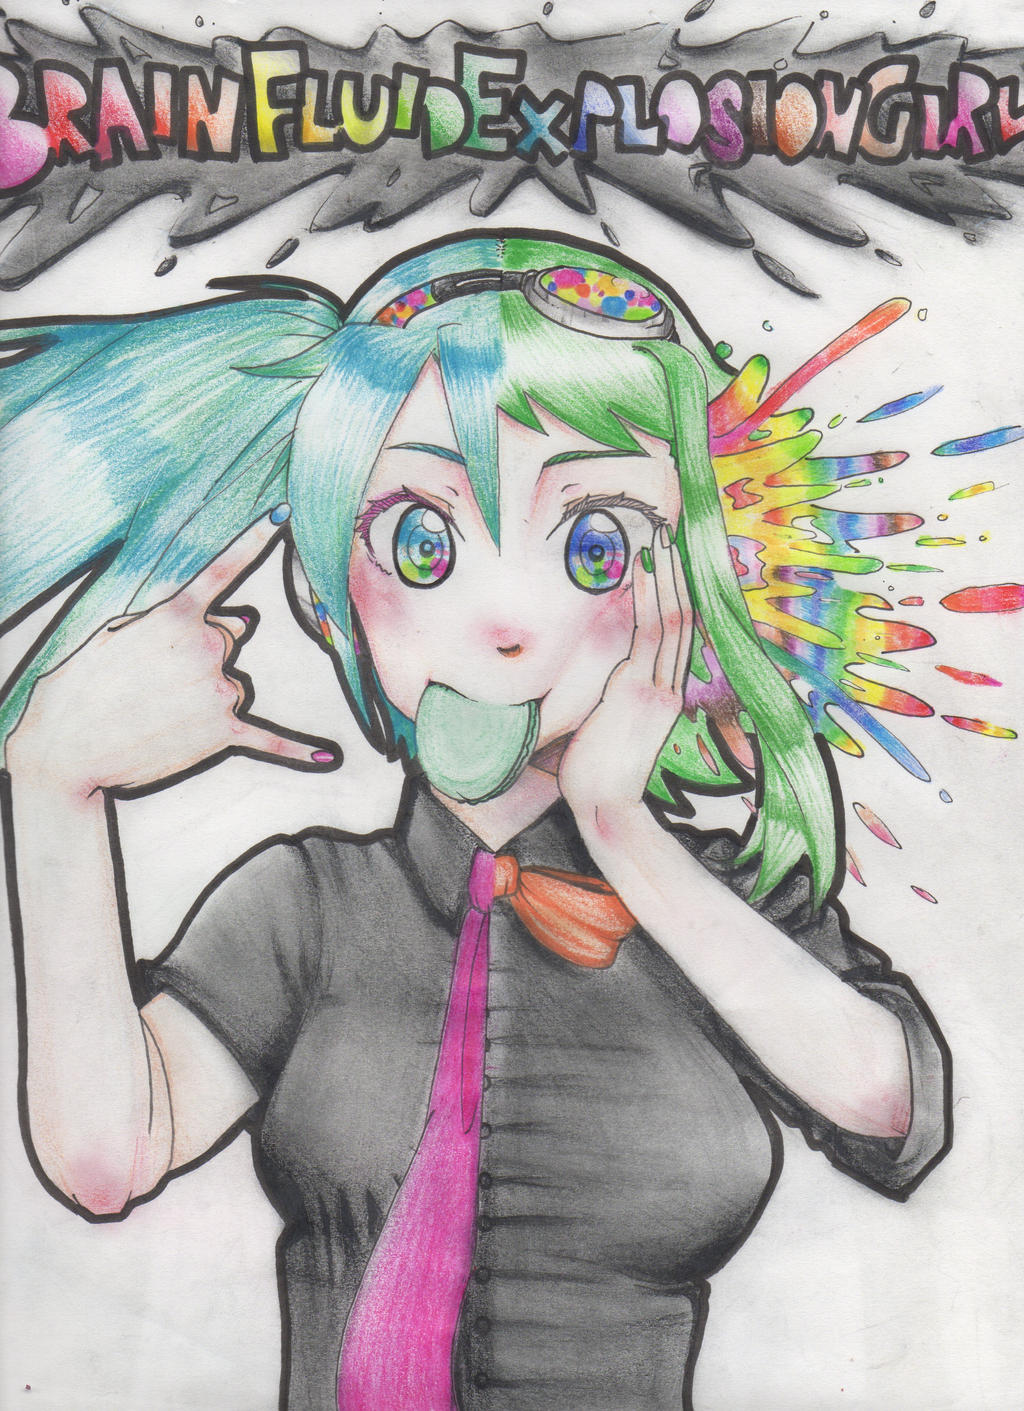 Brain Fluid Explosion Girl by GMPGunso